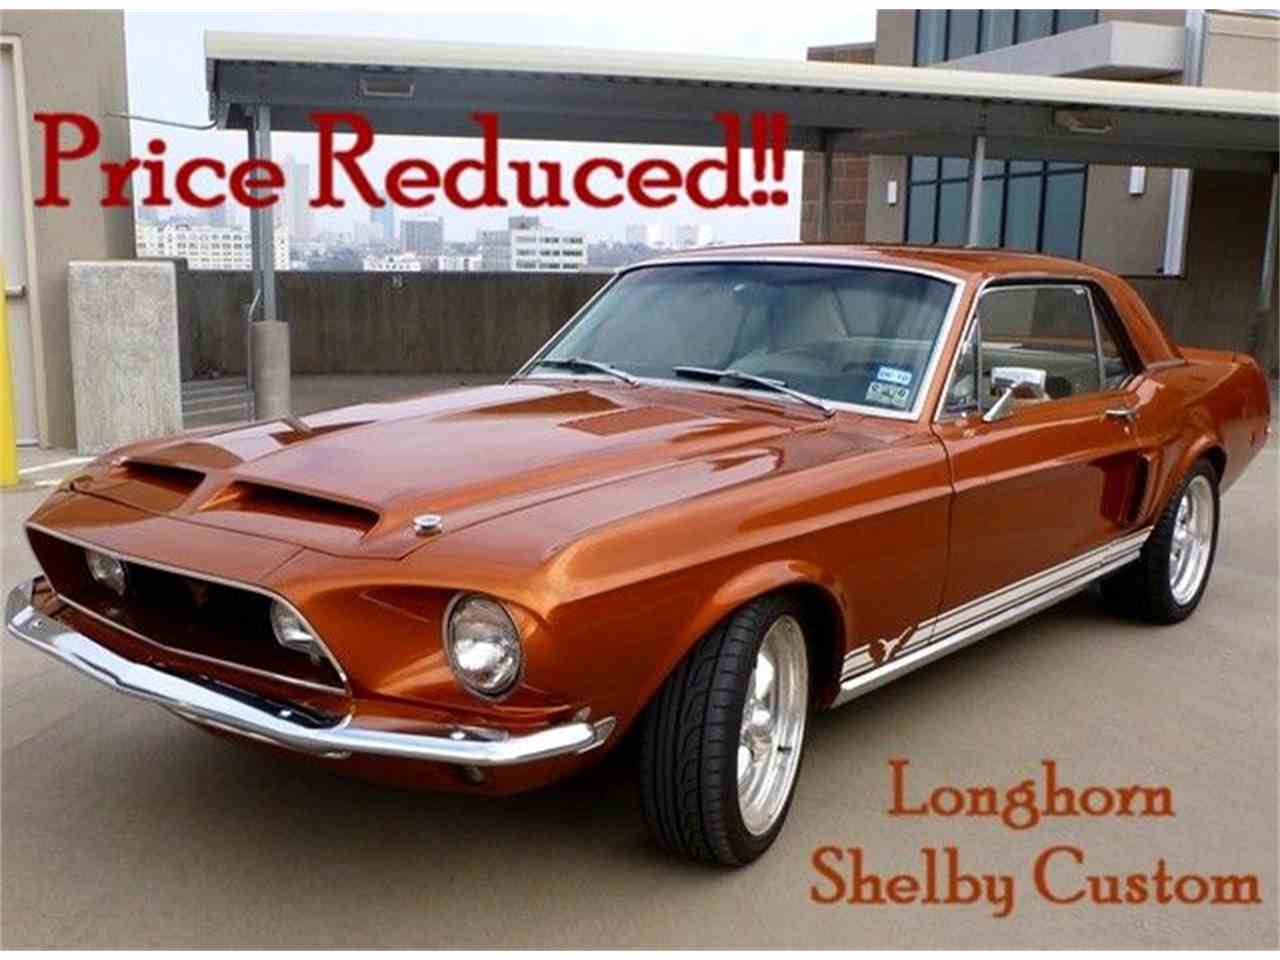 1968 ford mustang longhorn shelby custom for sale cc 395163. Black Bedroom Furniture Sets. Home Design Ideas